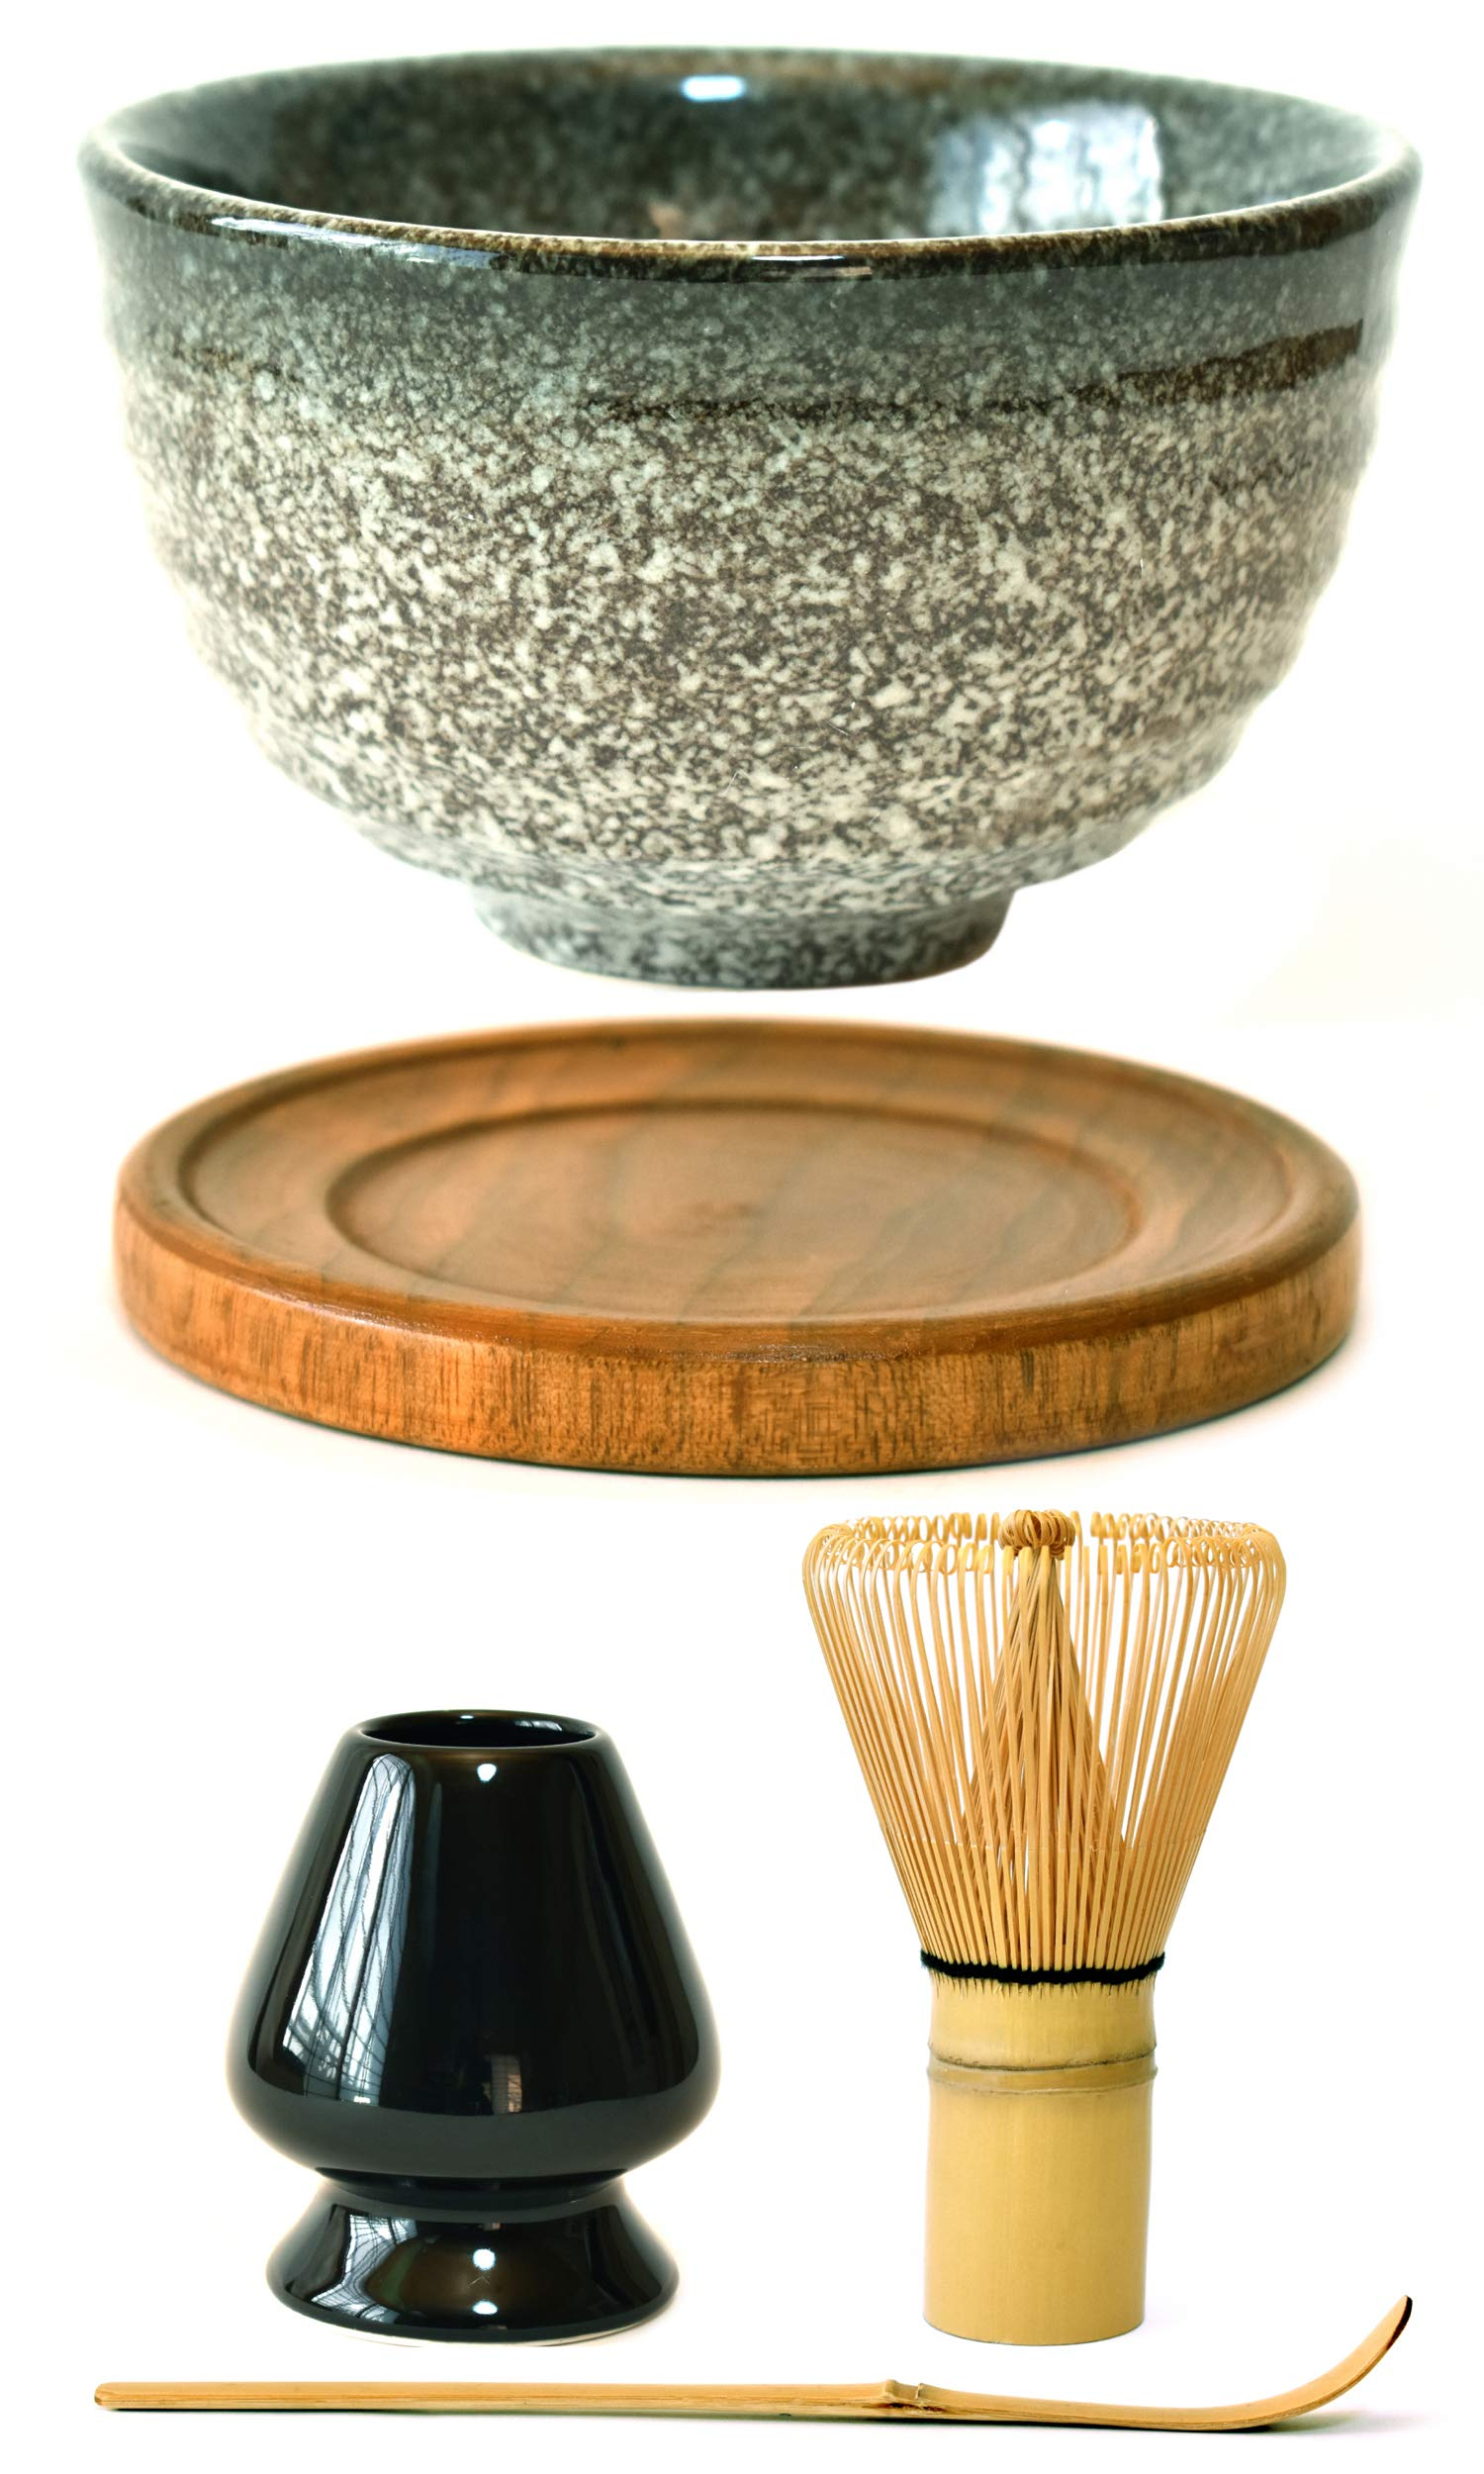 Premium Japanese Ceremonial Matcha Green Tea Chawan Bowl Full Kit Set with Accessories and Tools Bamboo Chasen Matcha Whisk Scoop and Holder (Speckled Dark Grey)